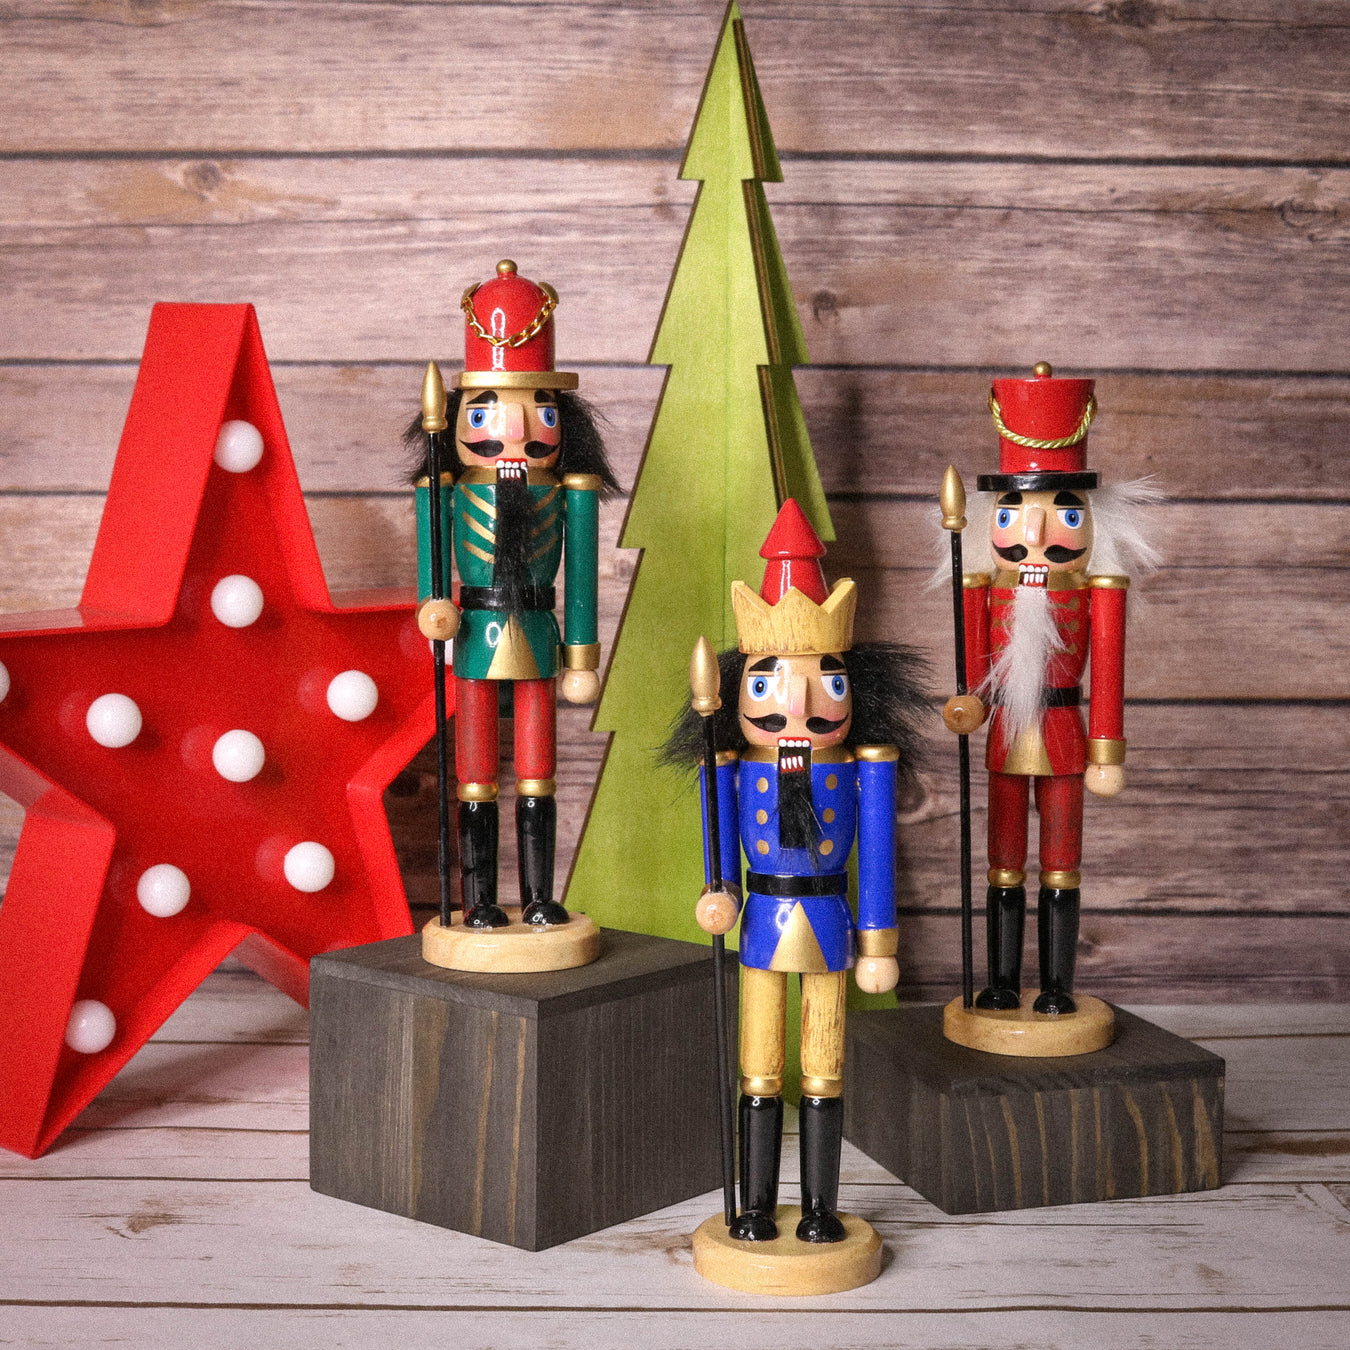 Christmas and Nutcracker Themed ornaments for decorating